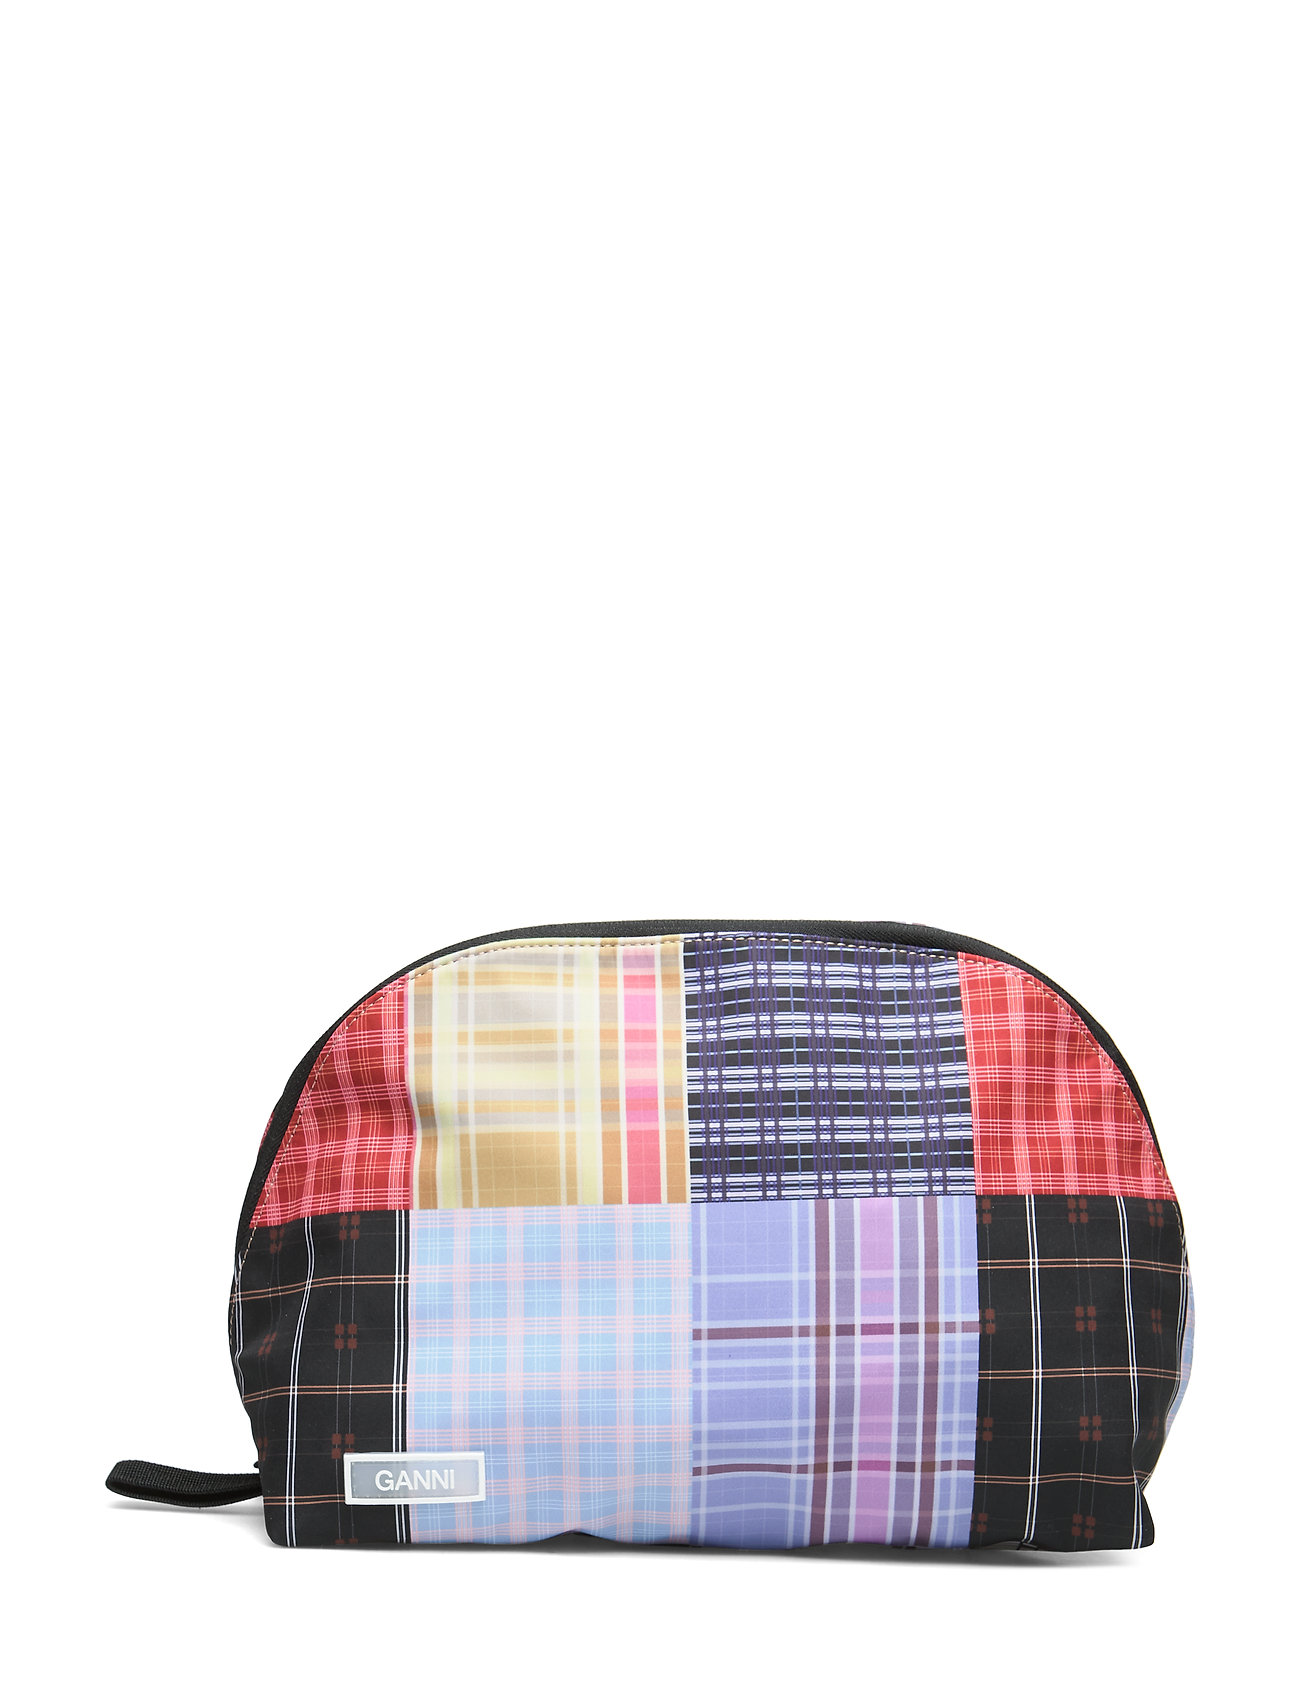 Ganni Tech Fabric Toiletry Bag - FOREVER BLUE